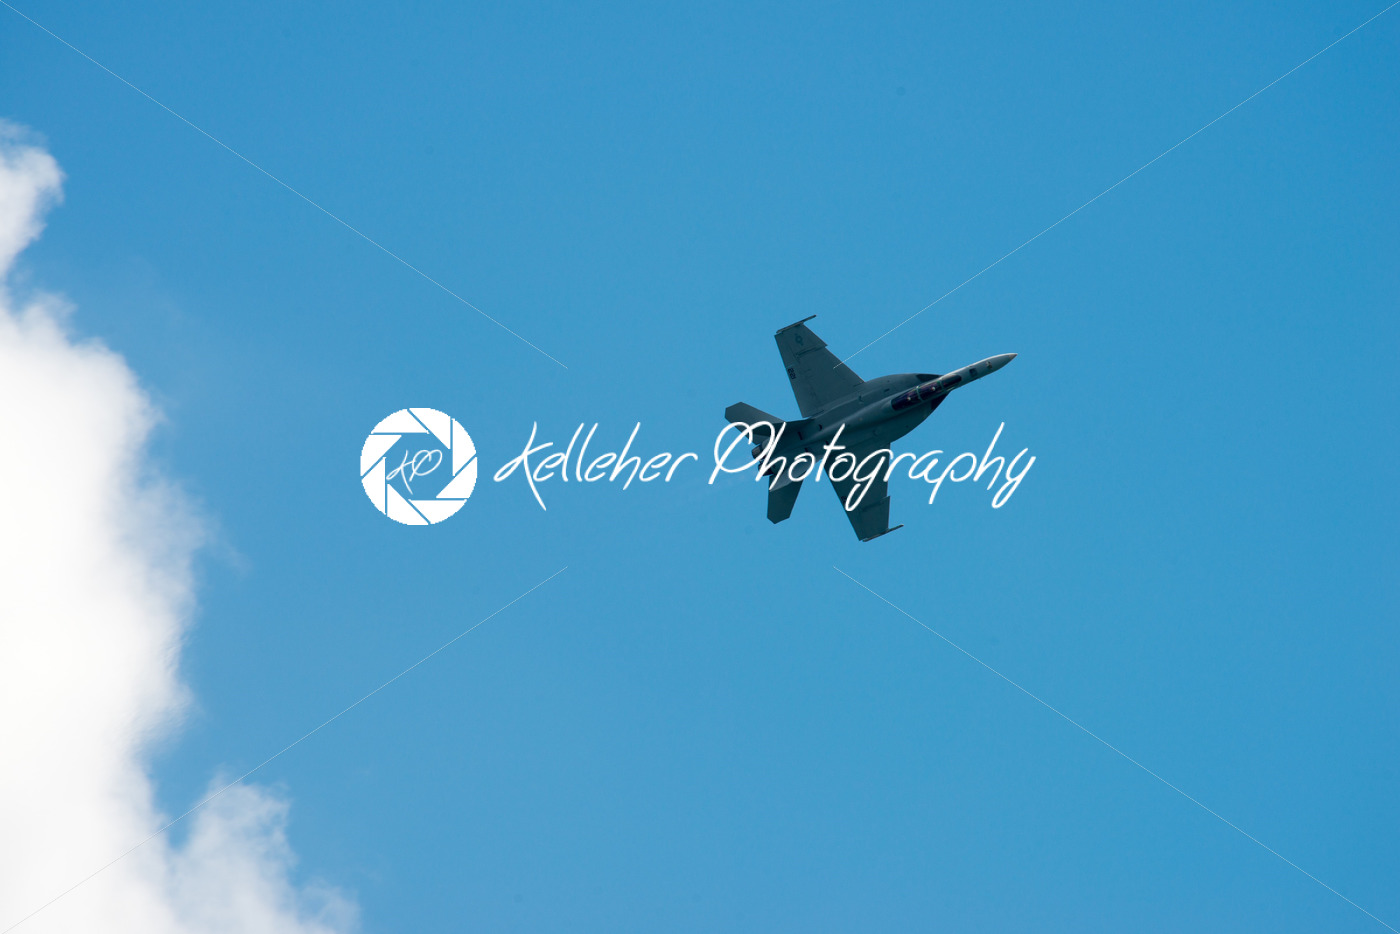 ATLANTIC CITY, NJ – AUGUST 17: Annual Atlantic City Air Show on August 17, 2016 - Kelleher Photography Store